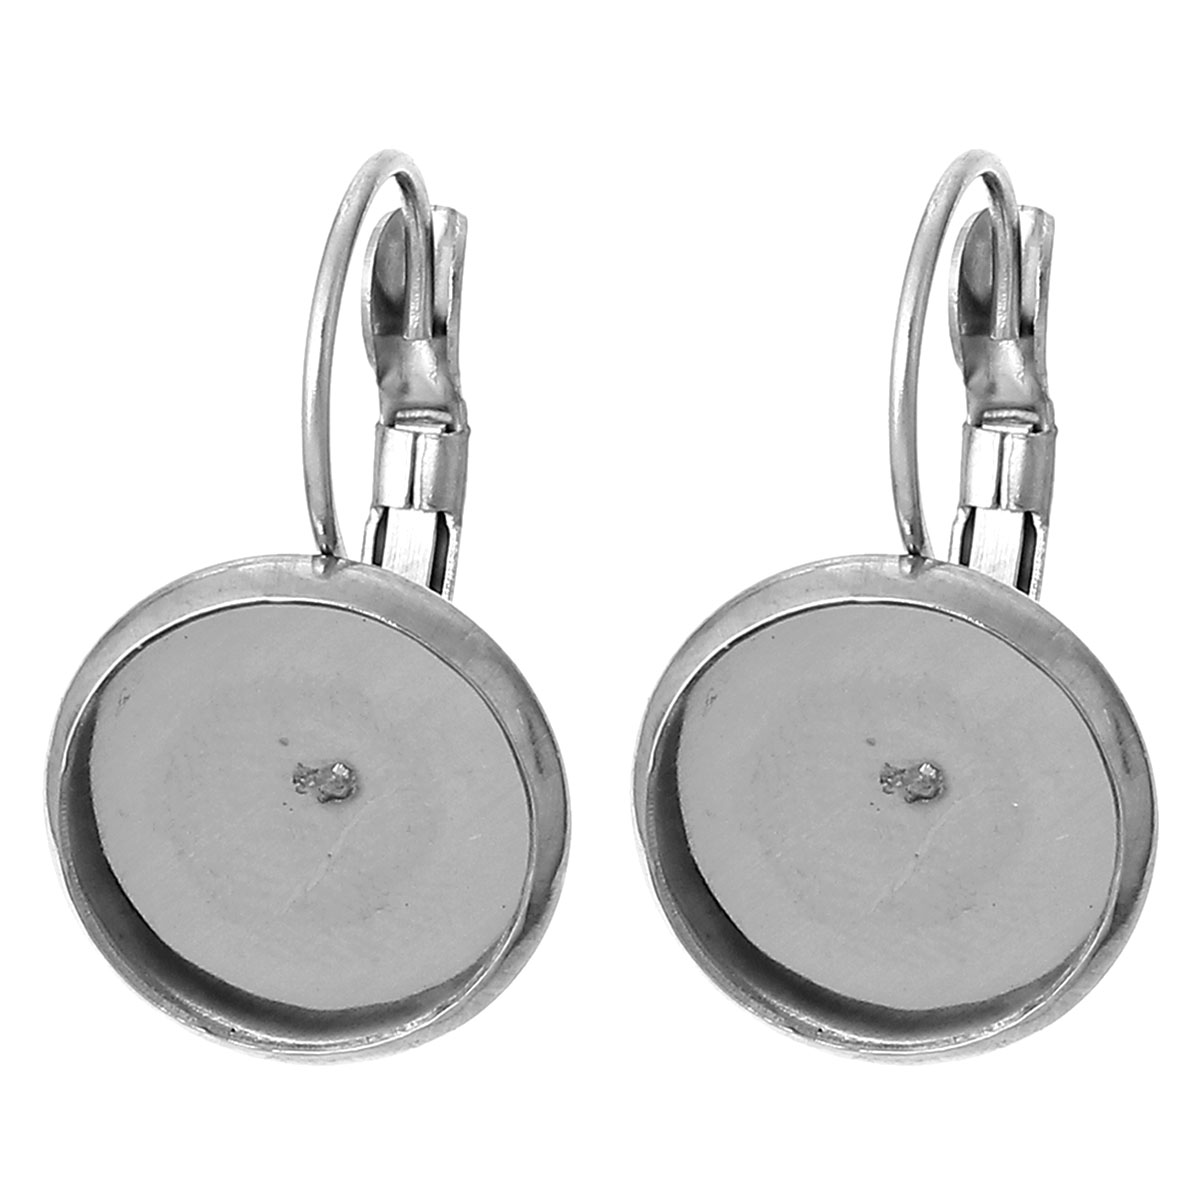 8seasons Stainless Steel Lever Back Clips Earring Findings Silver Tone  Color Cabochon Settings(fits 12mm